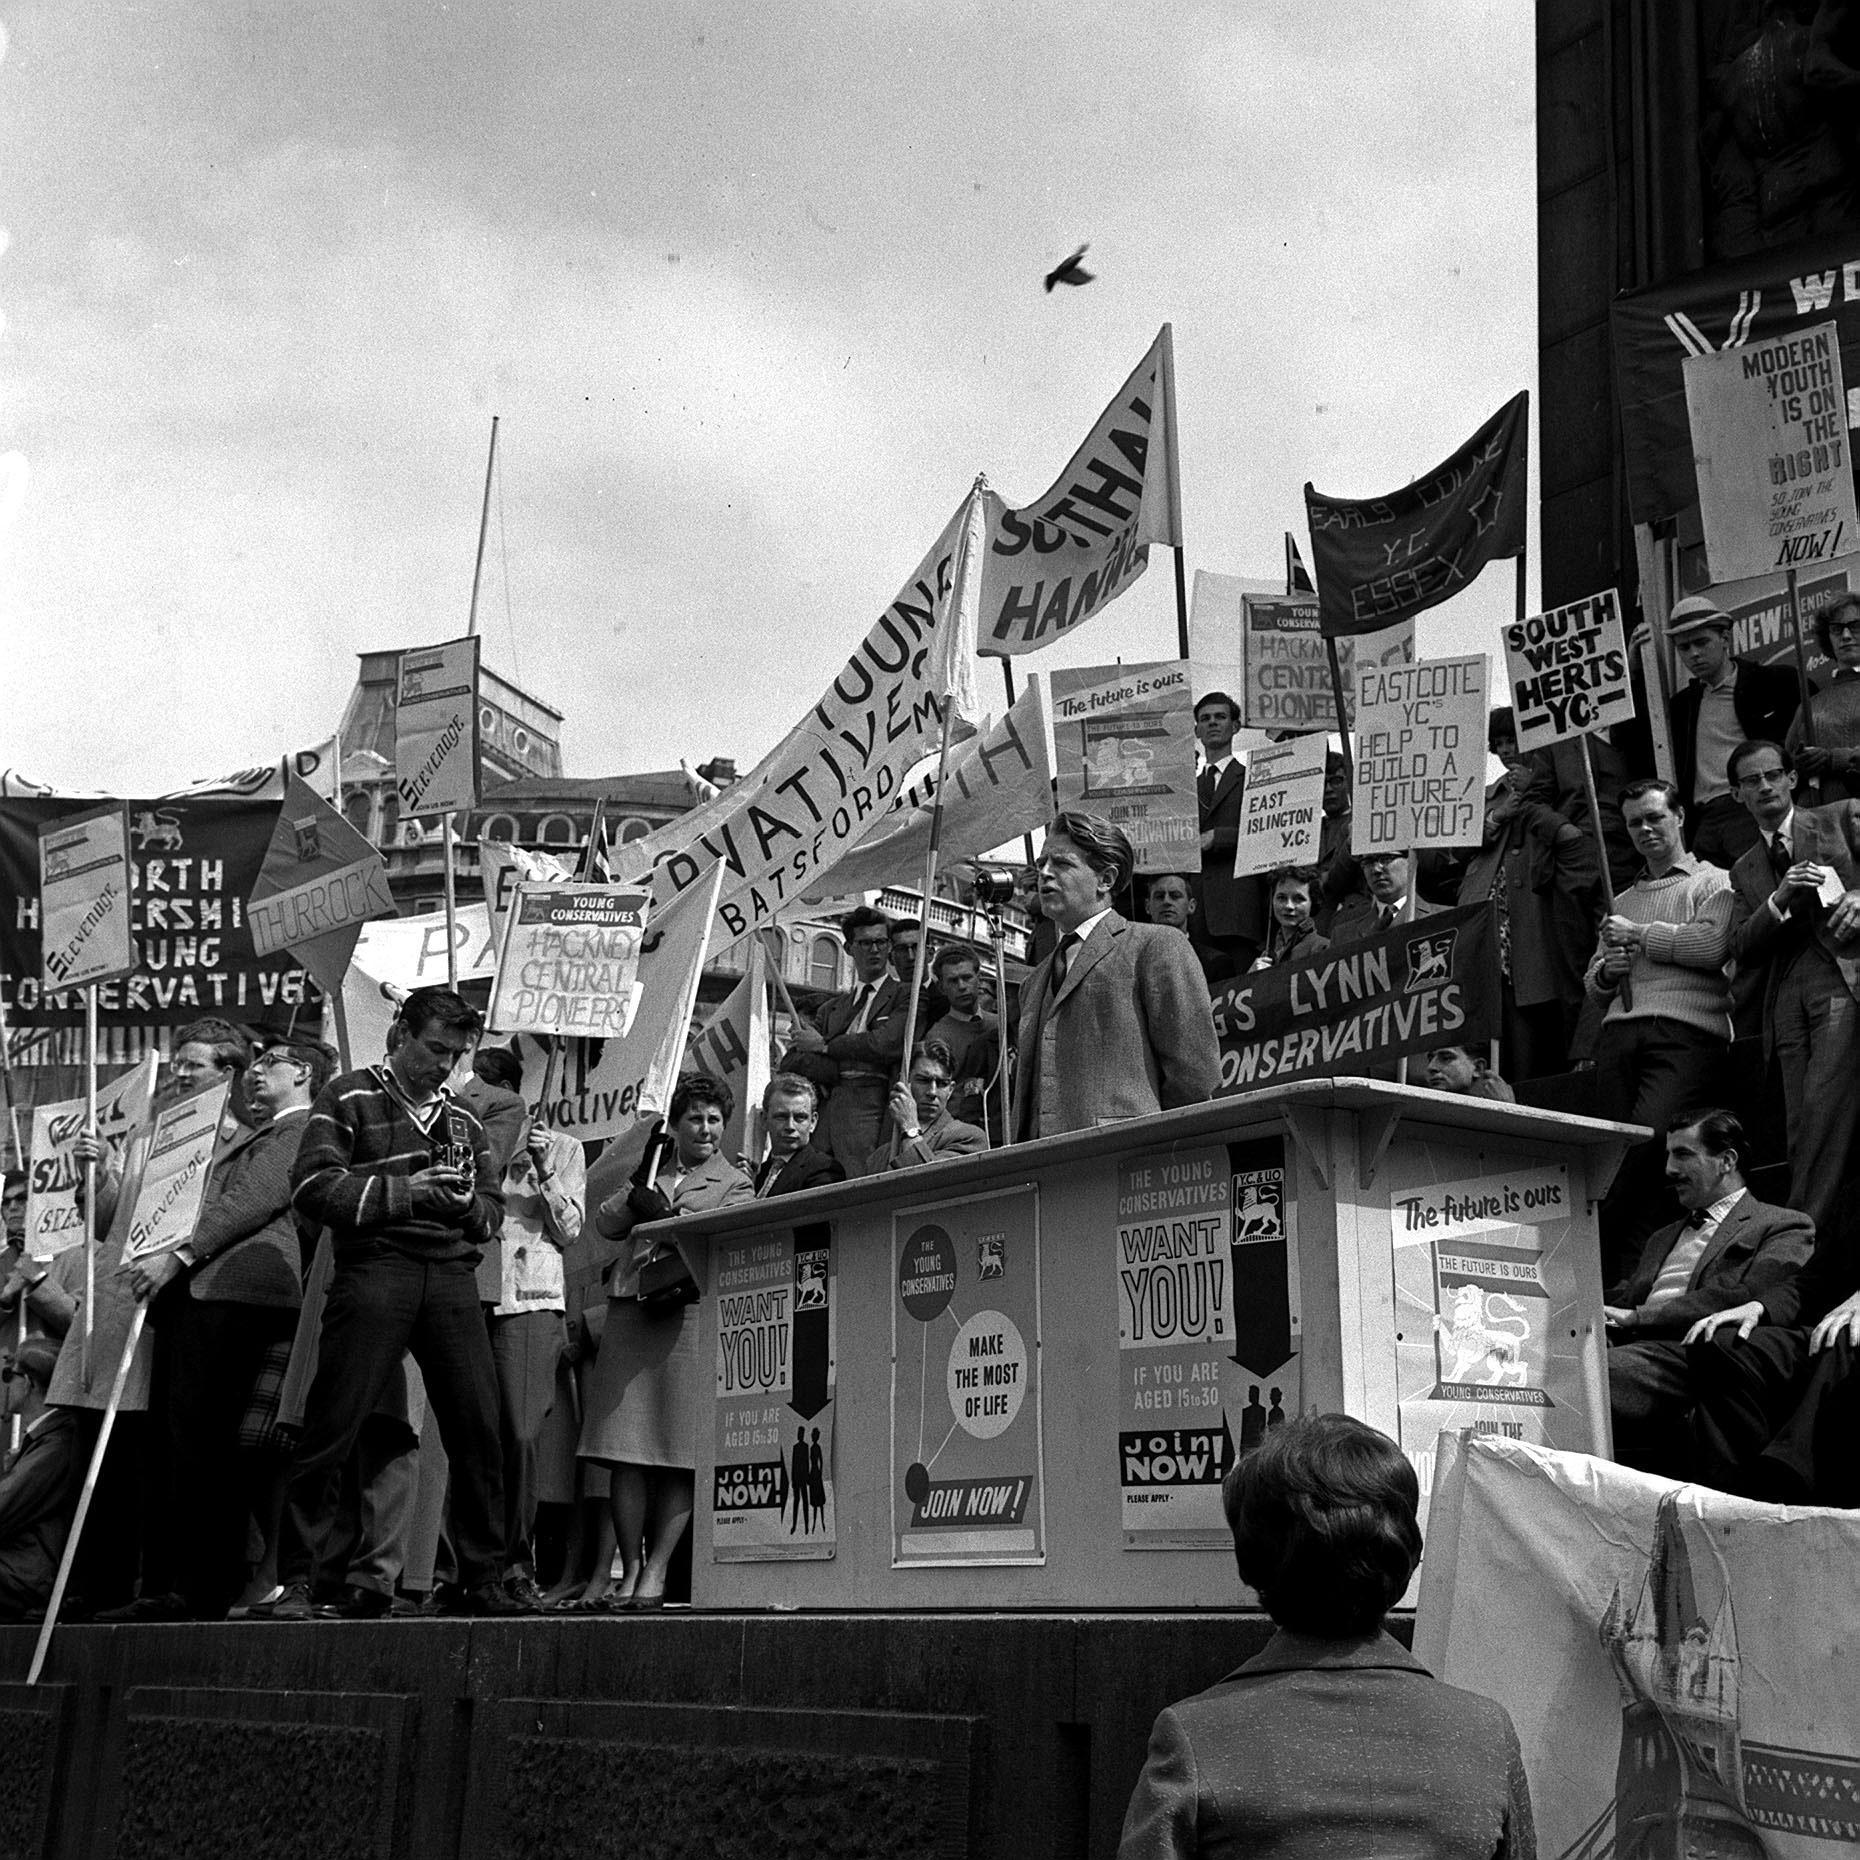 27th May, 1961: Surrounded by banners of every shape and size, Mr Christopher Chataway, Tory member of Parliament for North Lewisham, pictured when he spoke at a Young Conservatives rally in Trafalgar Square